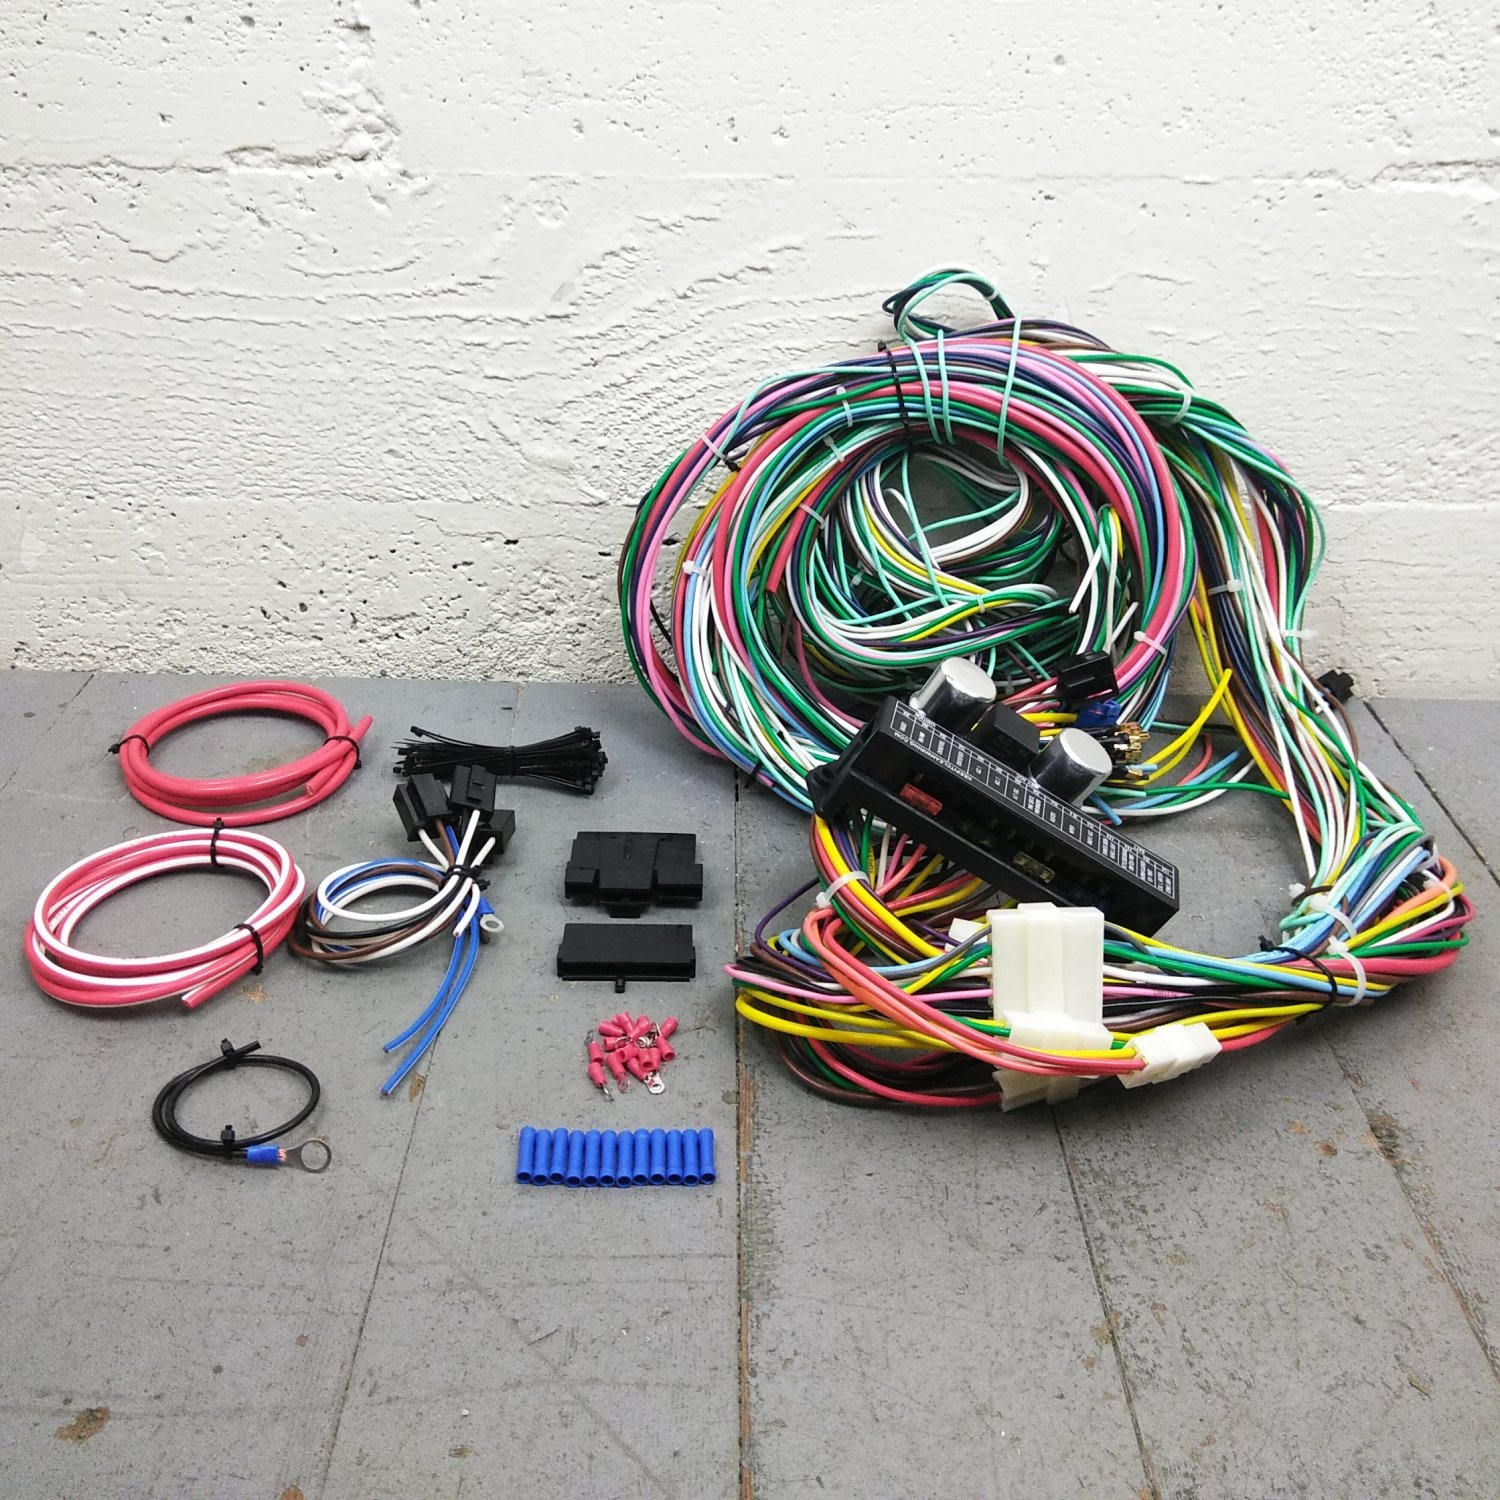 1953 - 1964 Dodge Truck Wire Harness Upgrade Kit fits painless update  terminal. Bar_Product_Description_C